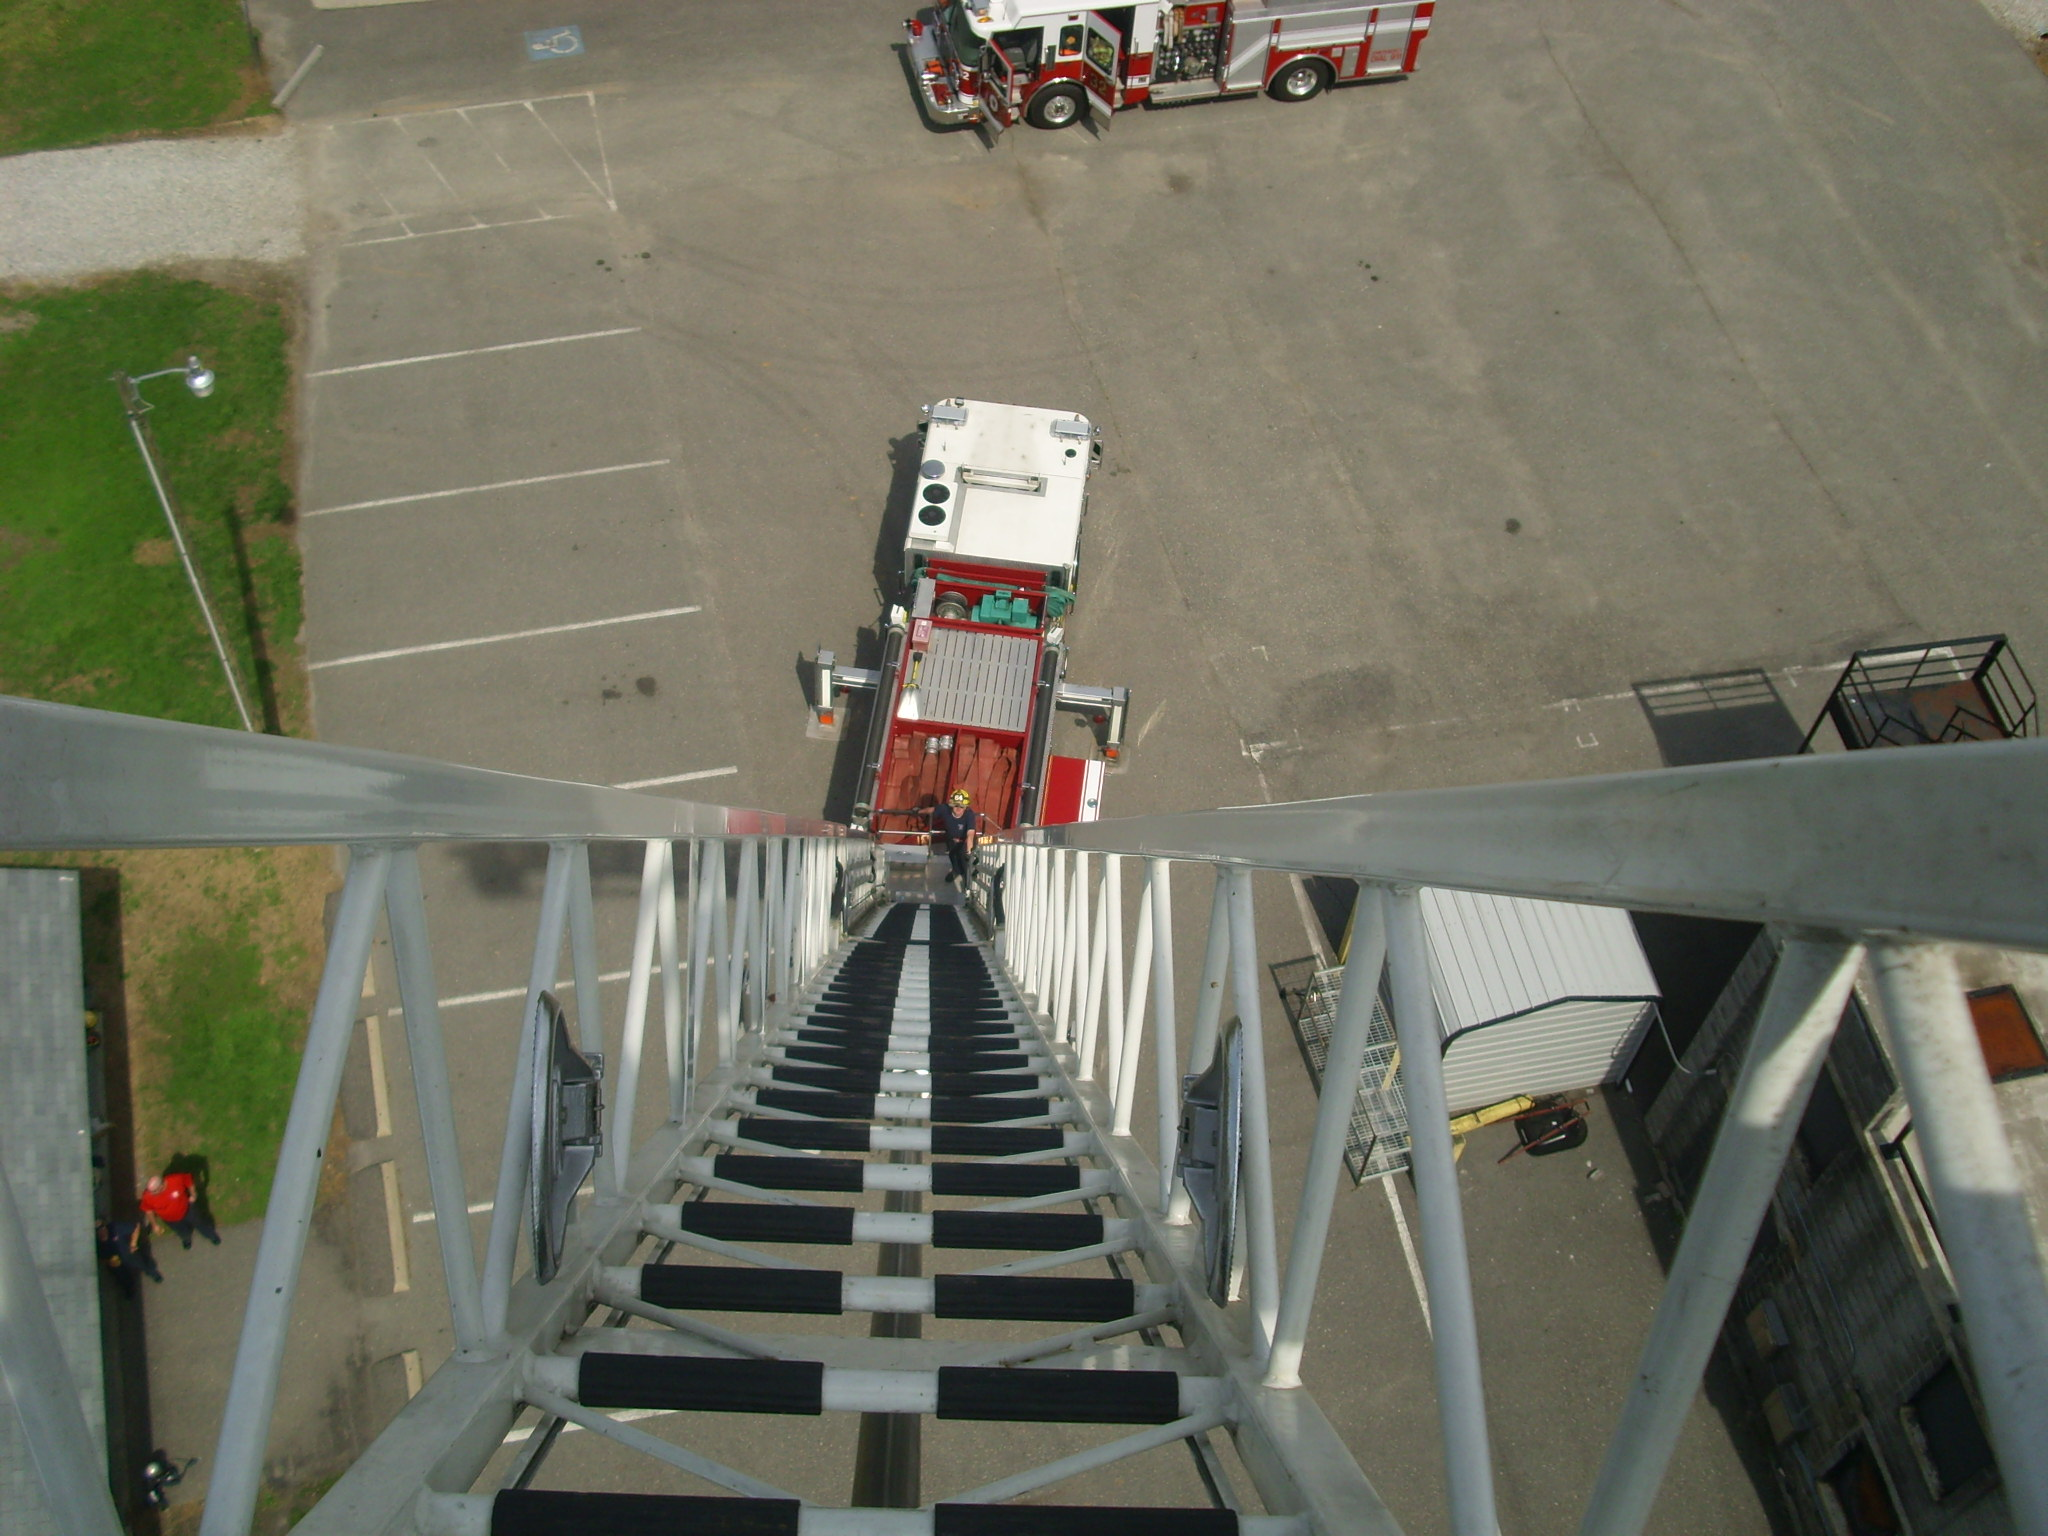 Fire-Rescue ladder view